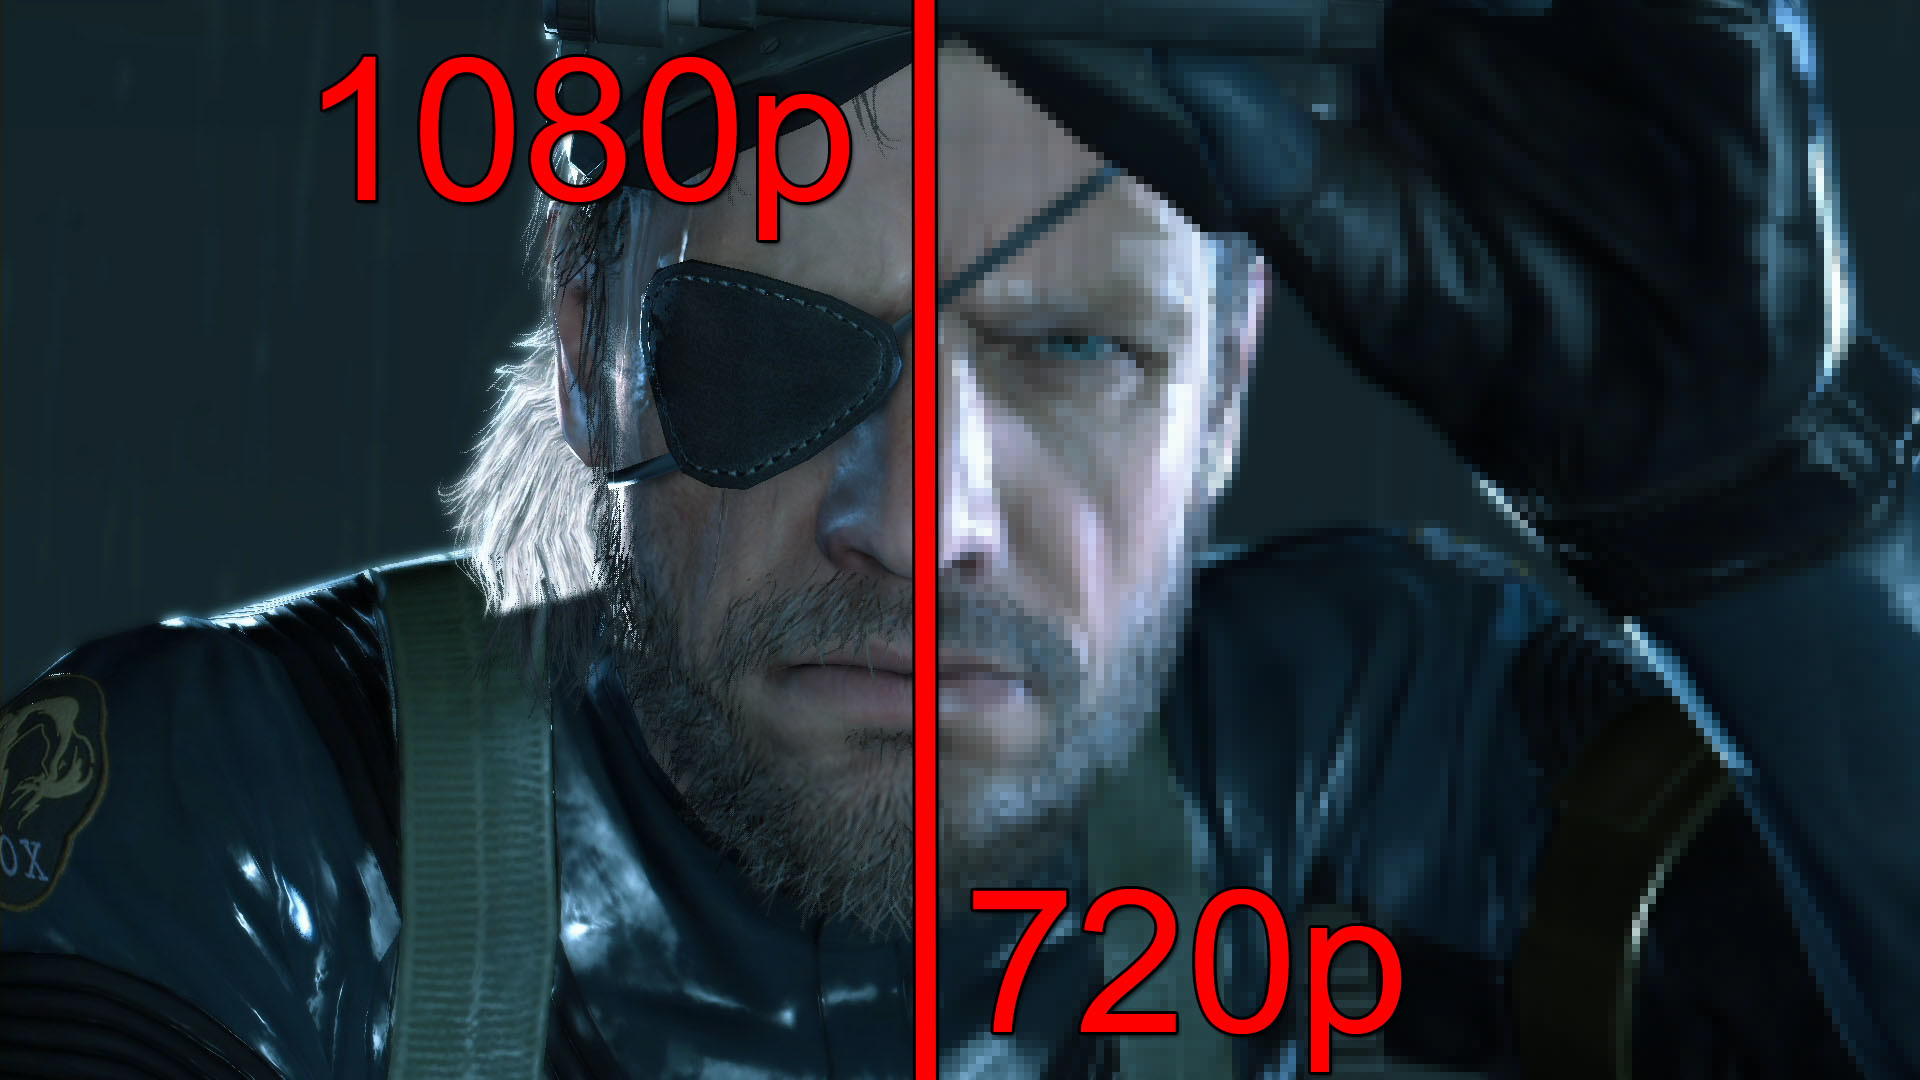 Metal Gear Solid V 1080p vs 720p Screenshot Comparison: Will the Old ..